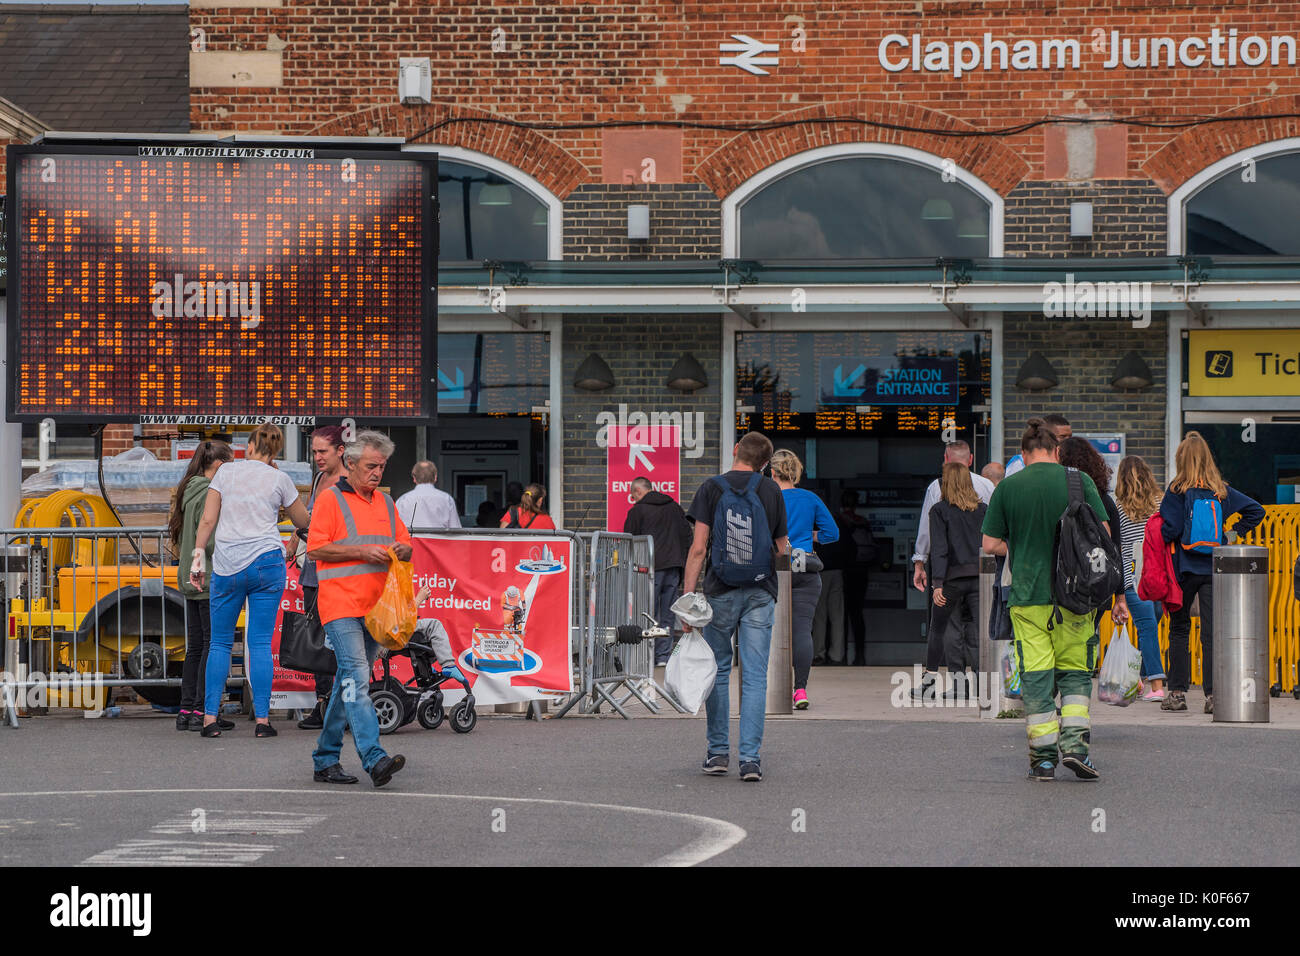 London, UK. 23rd August, 2017. Staff and signs warn passengers of a 75% reduction in service going through Clapham Stock Photo